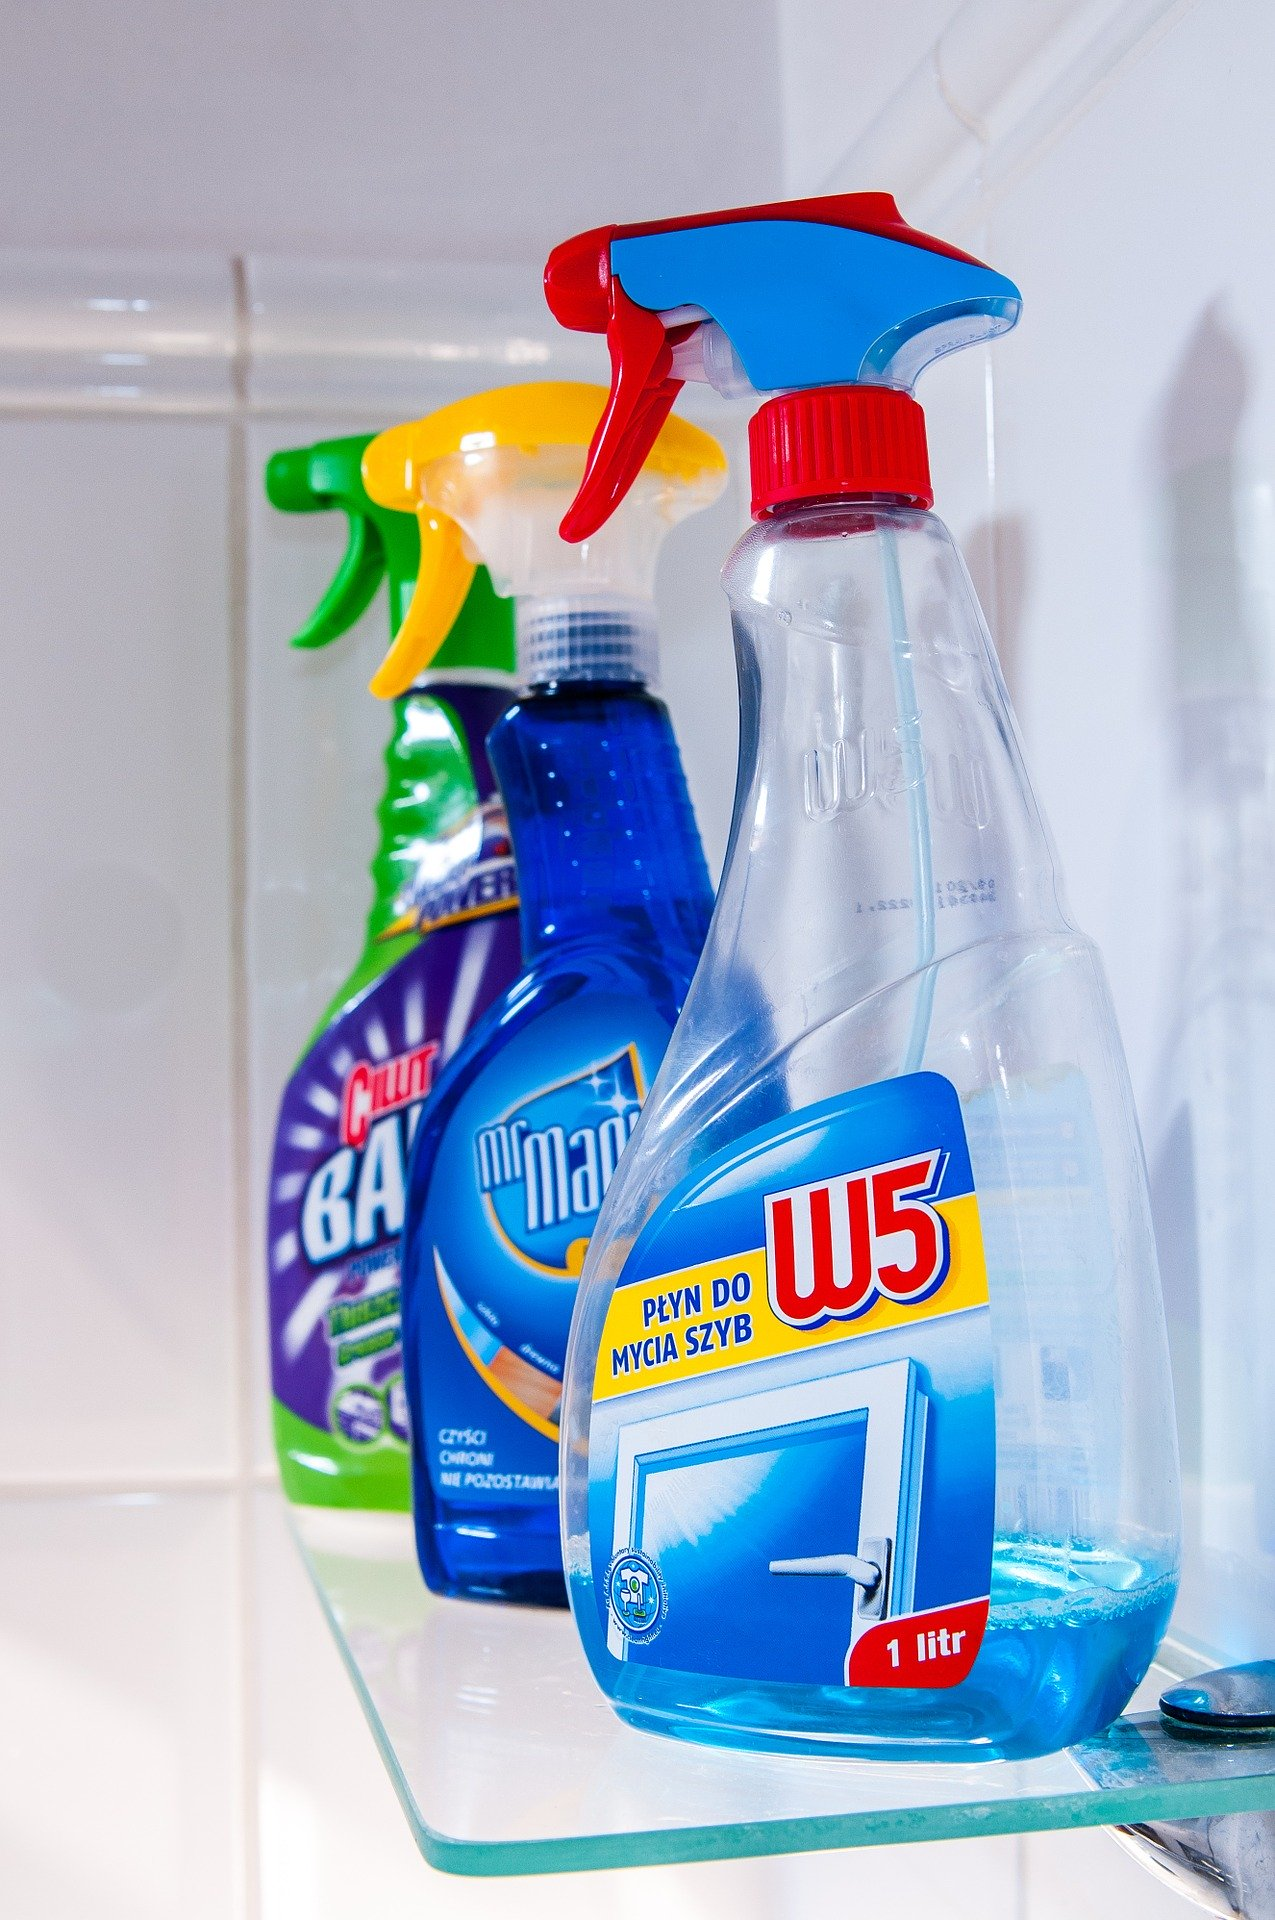 BIOCIDES & CLEANING SOLUTIONS